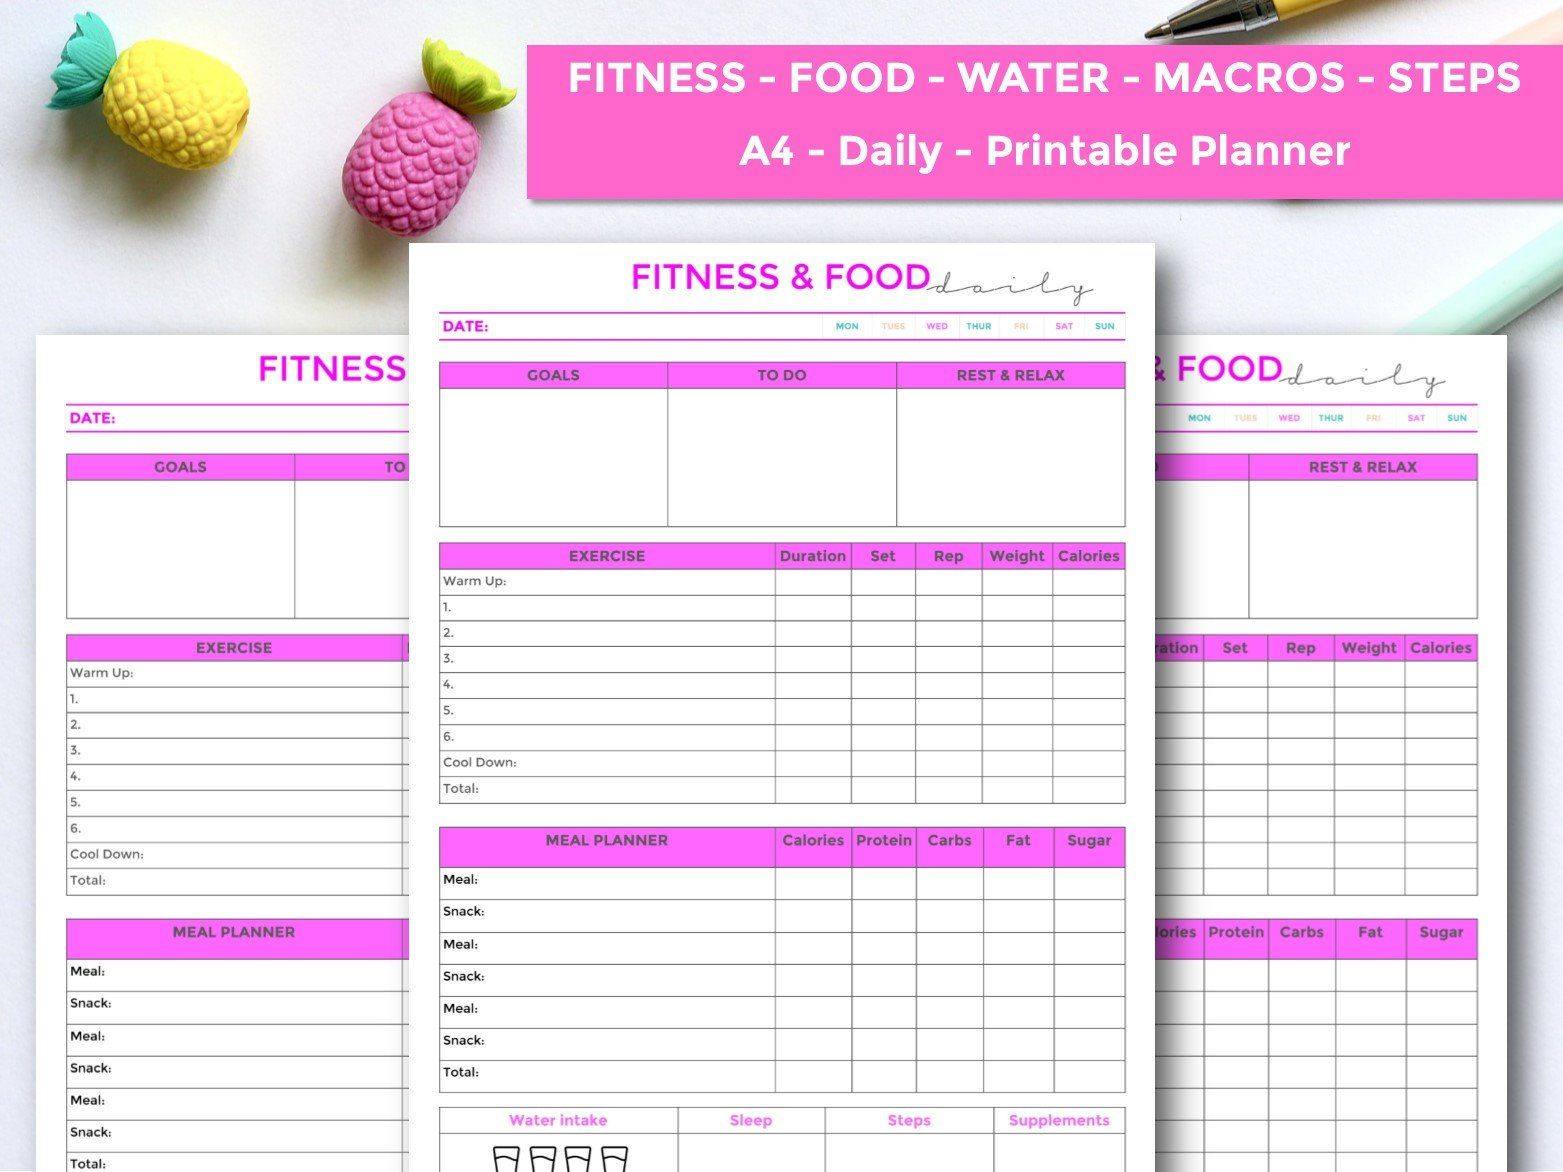 Daily Fitness Printable Planner Workout Planner